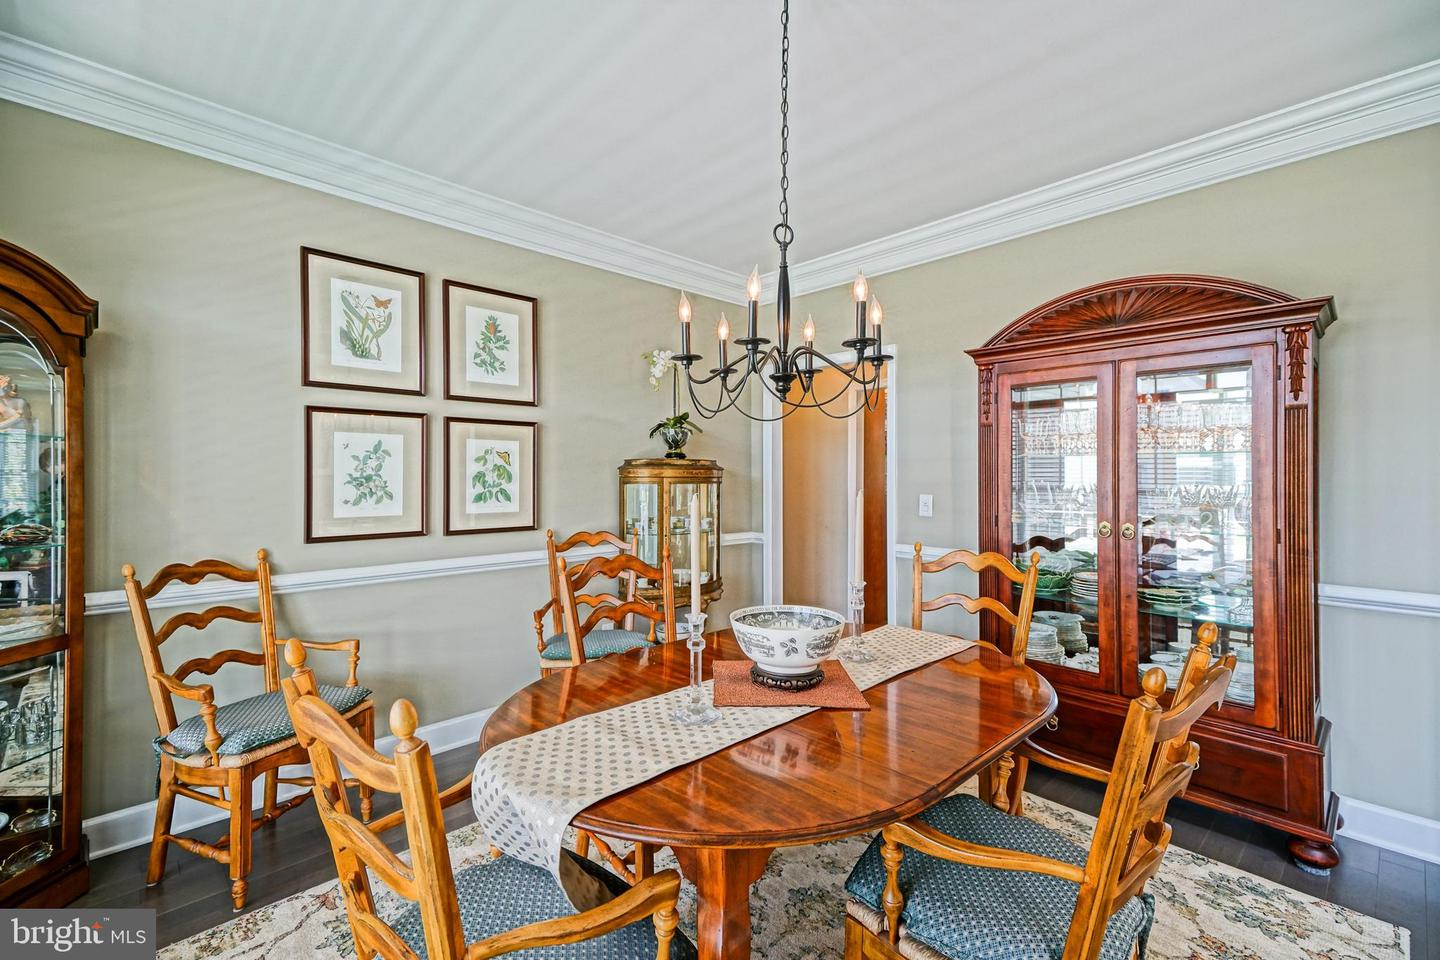 DESU139128-301667380971-2019-08-05-10-43-56 35222 Overfalls Dr N | Lewes, DE Real Estate For Sale | MLS# Desu139128  - Lee Ann Group